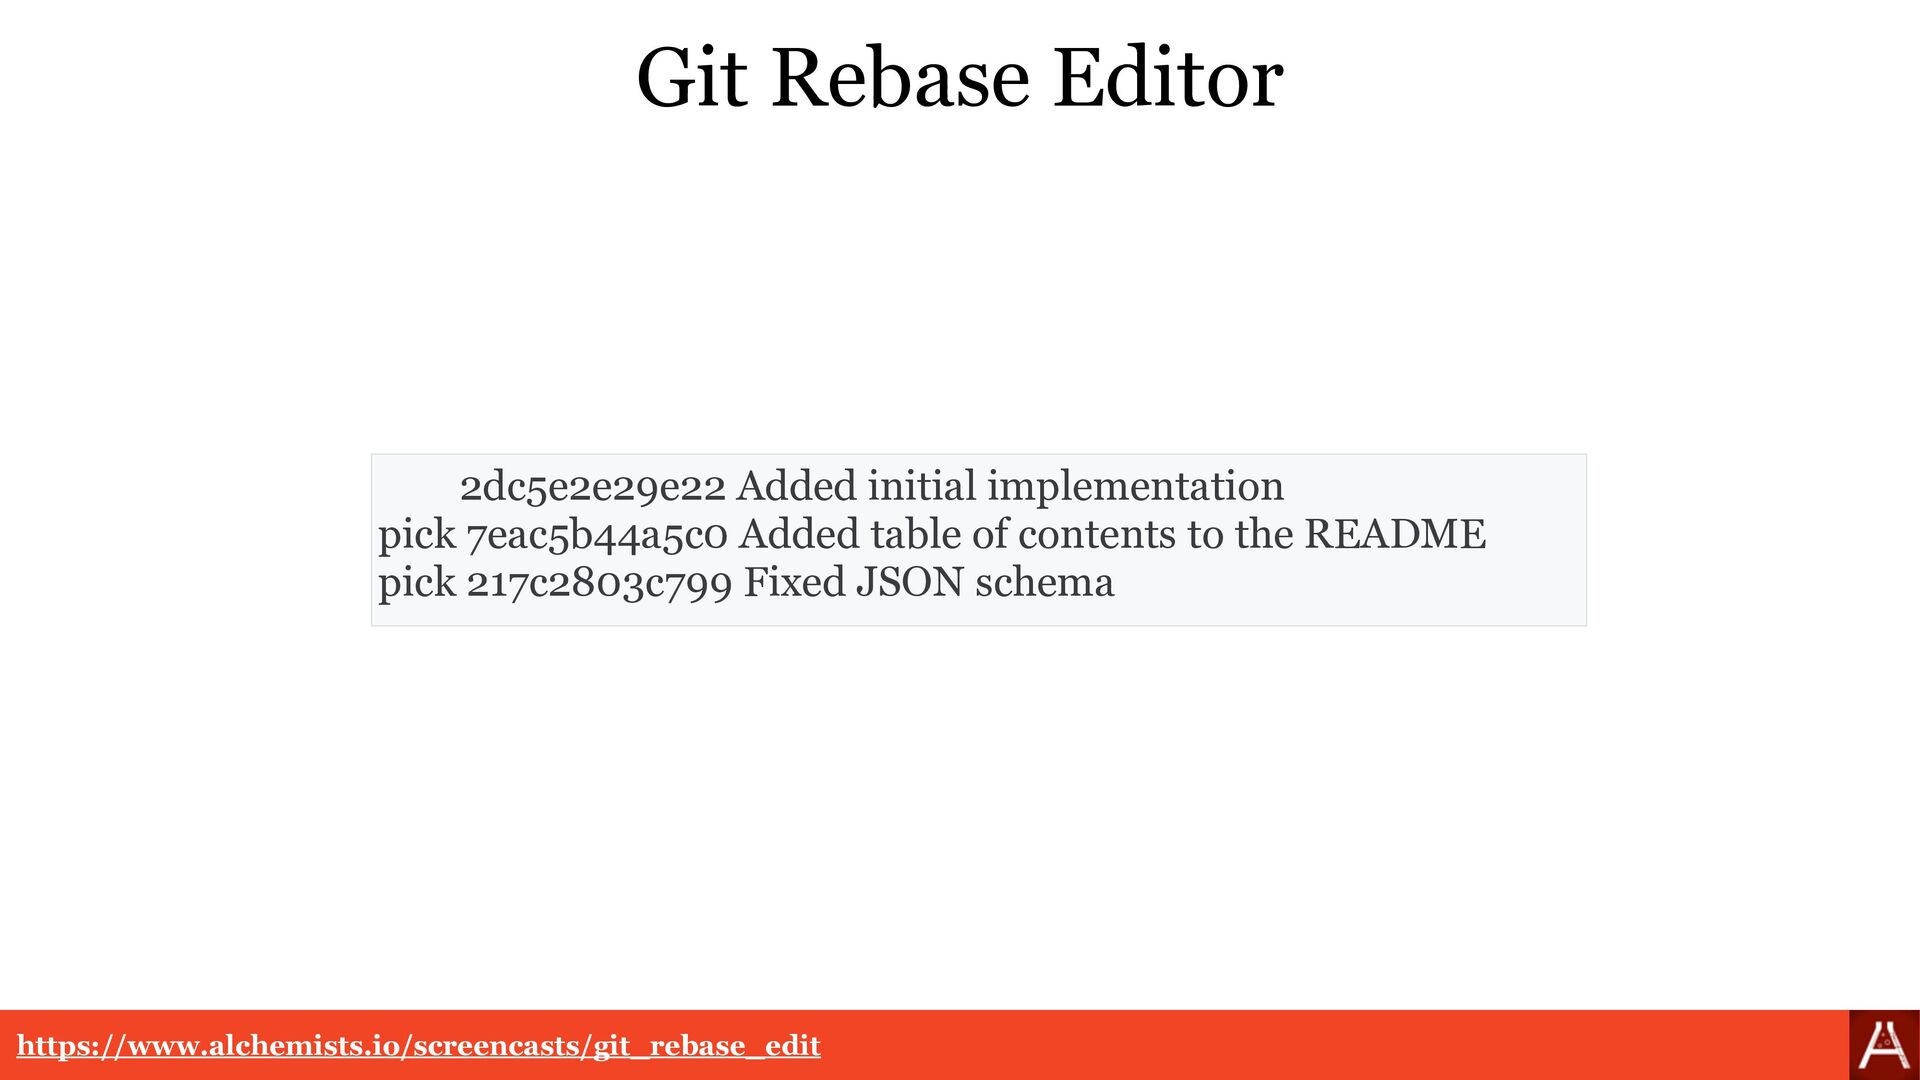 Git Rebase Edit https://www.alchemists.io/scree...